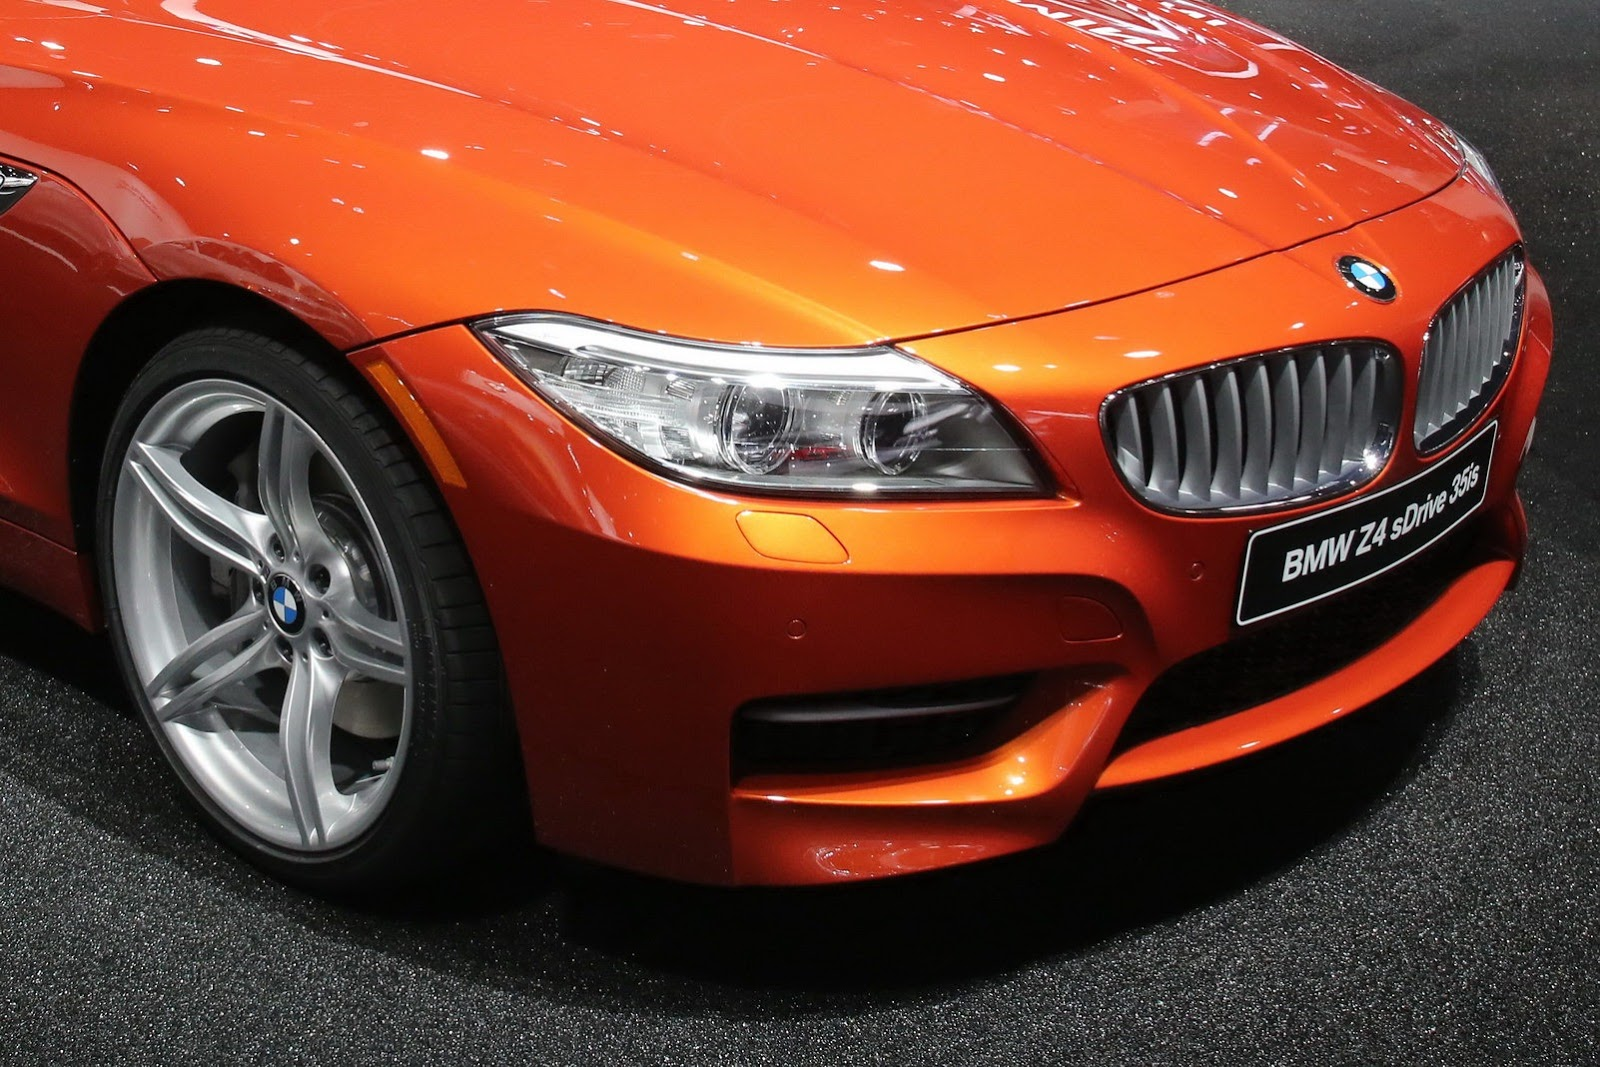 2014 Bmw Z4 Facelift New Photos Bmw Blog Your Html